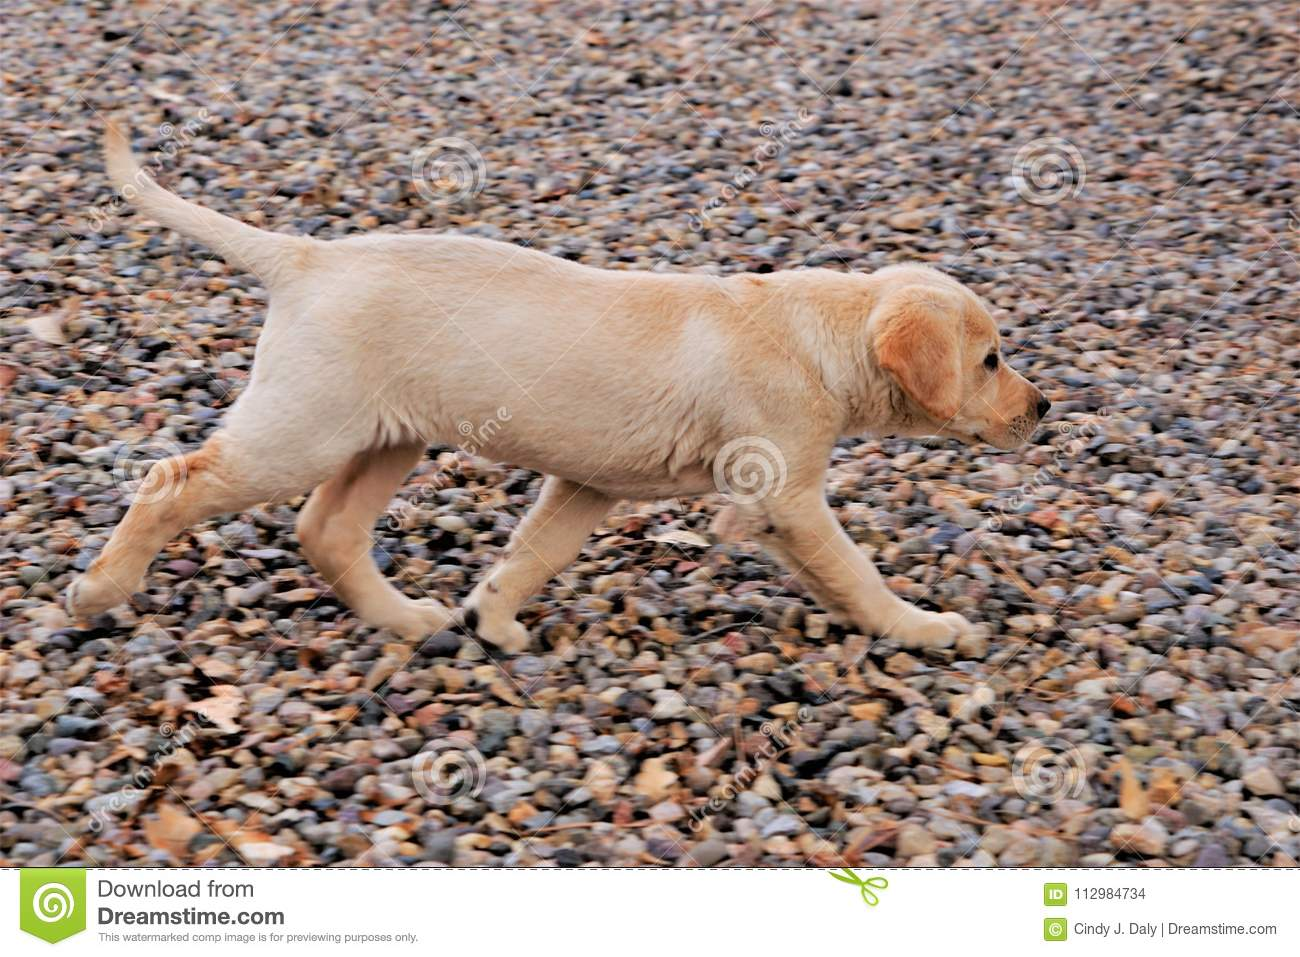 A photograph of a yellow labrador puppy trotting blur